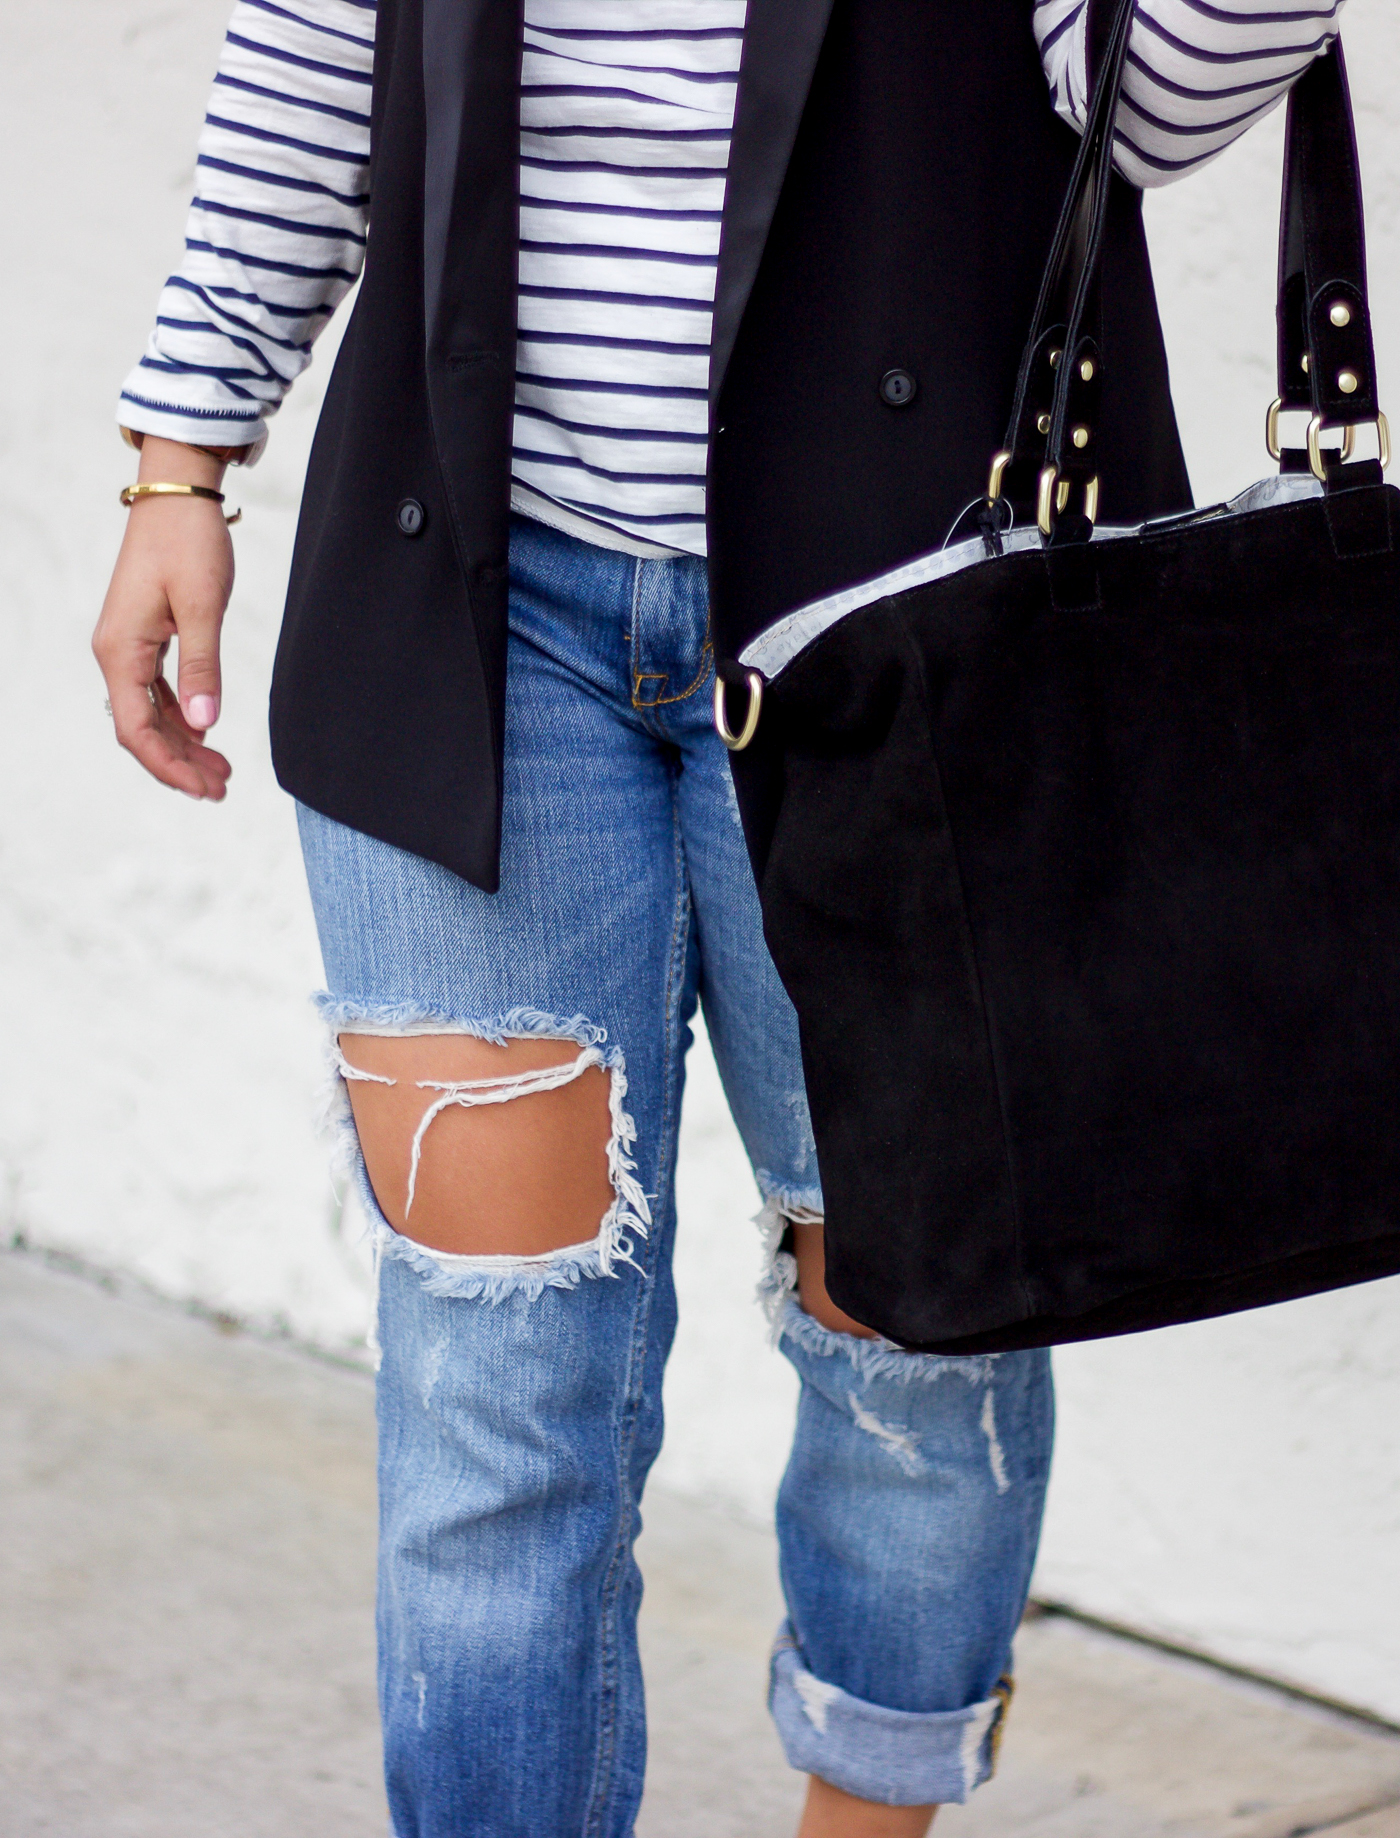 One of the top Toronto fashion blogger, Jackie Goldhar of Something About That, in ripped jeans and stripes